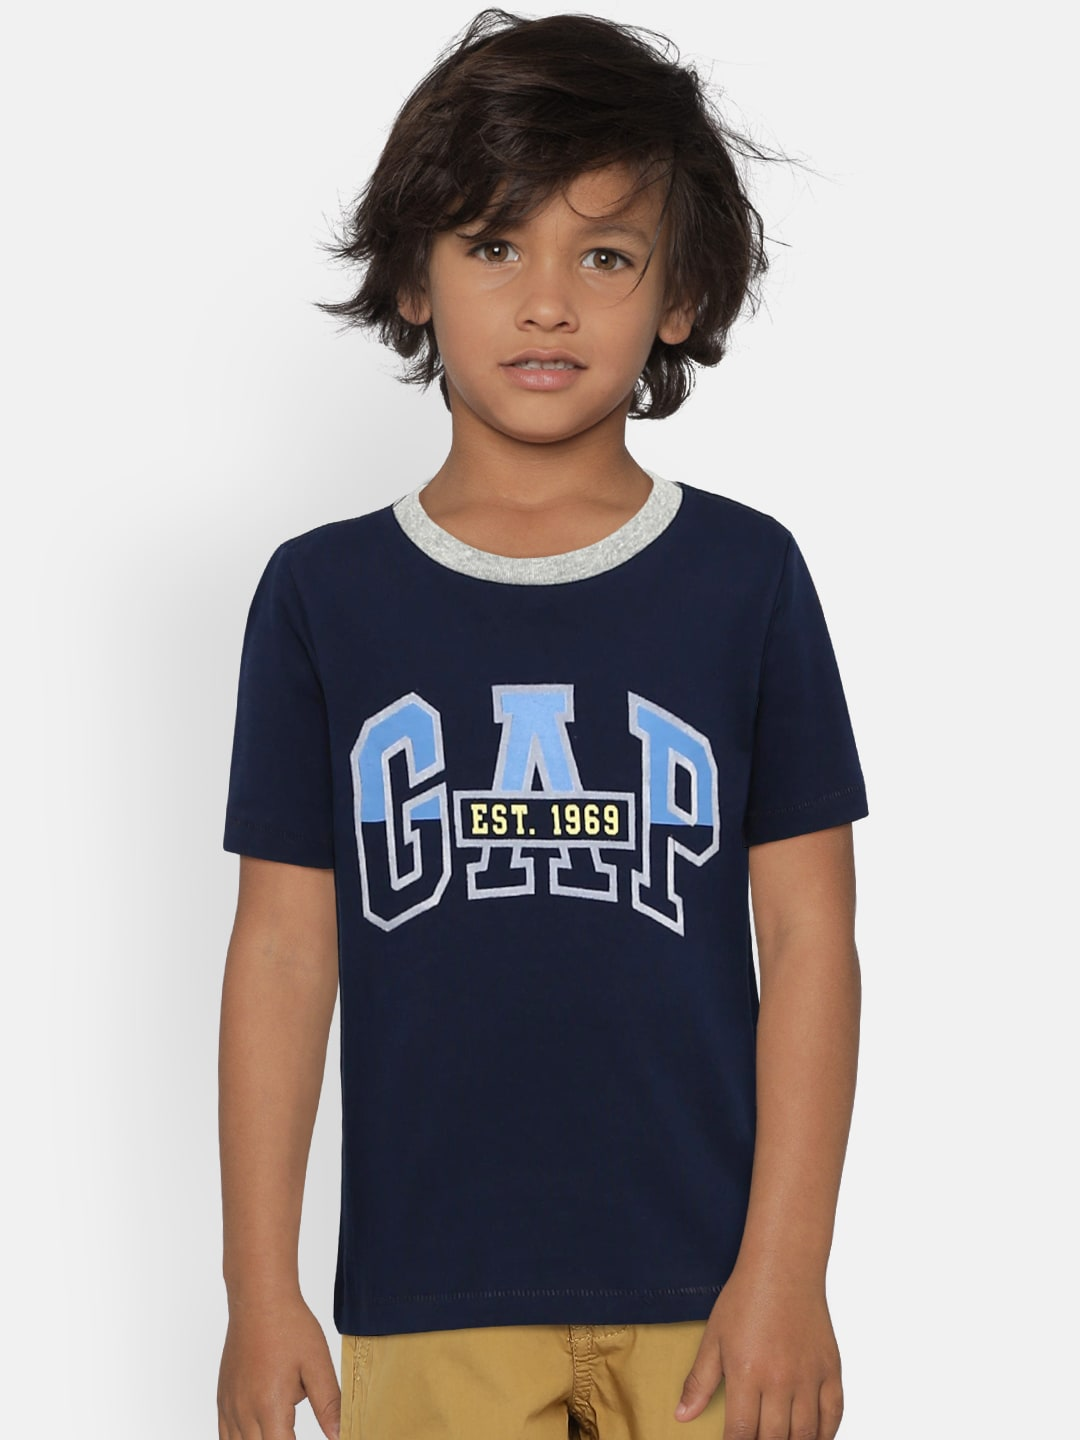 Kids T shirts - Buy T shirts for Kids Online in India Myntra 1b3477cf3